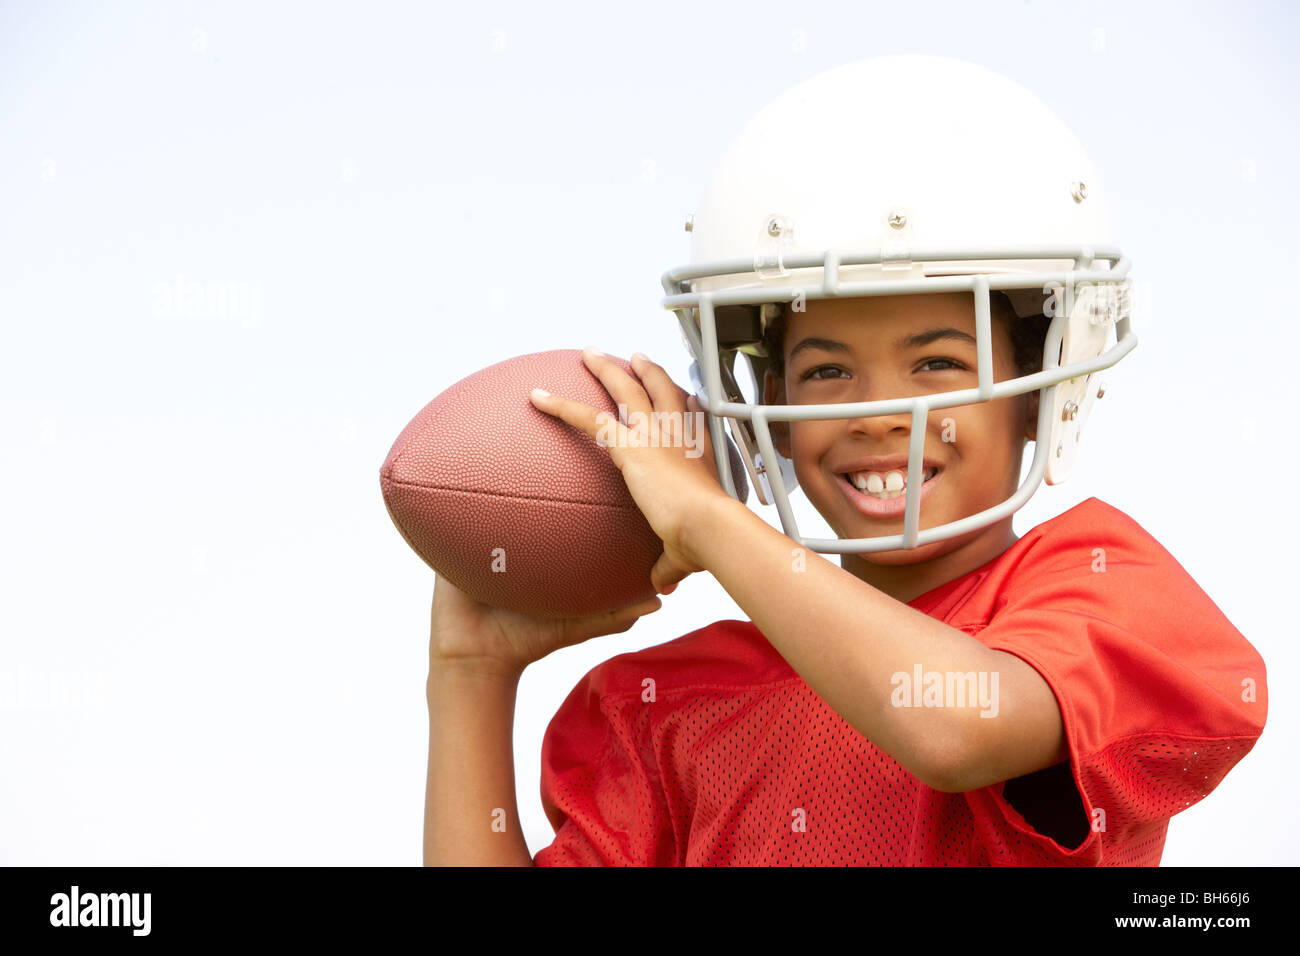 Young Boy Playing American Football - Stock Image